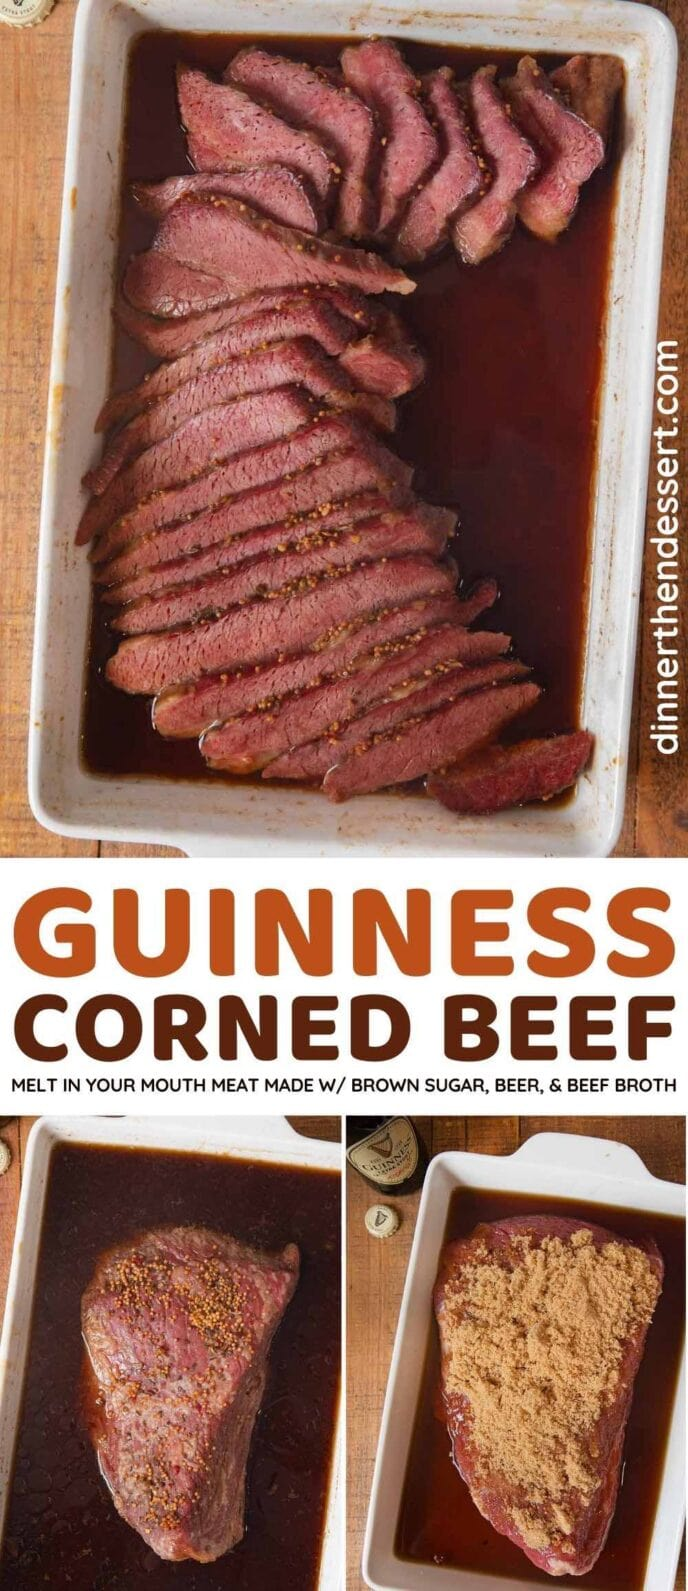 Guinness Corned Beef collage